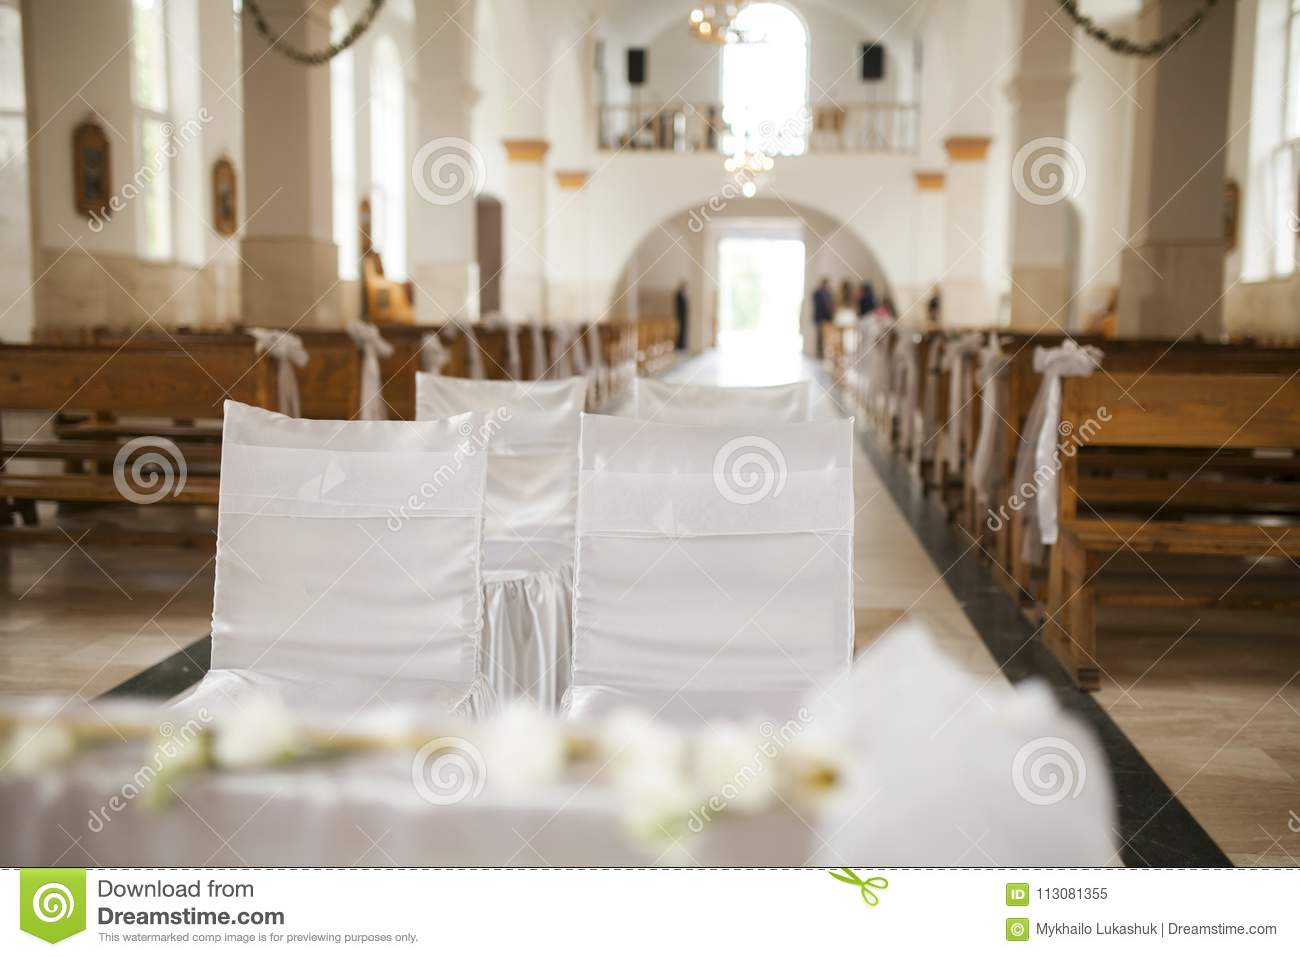 Decorated Chairs Inside Church On Marriage Ceremony Stock Image ...